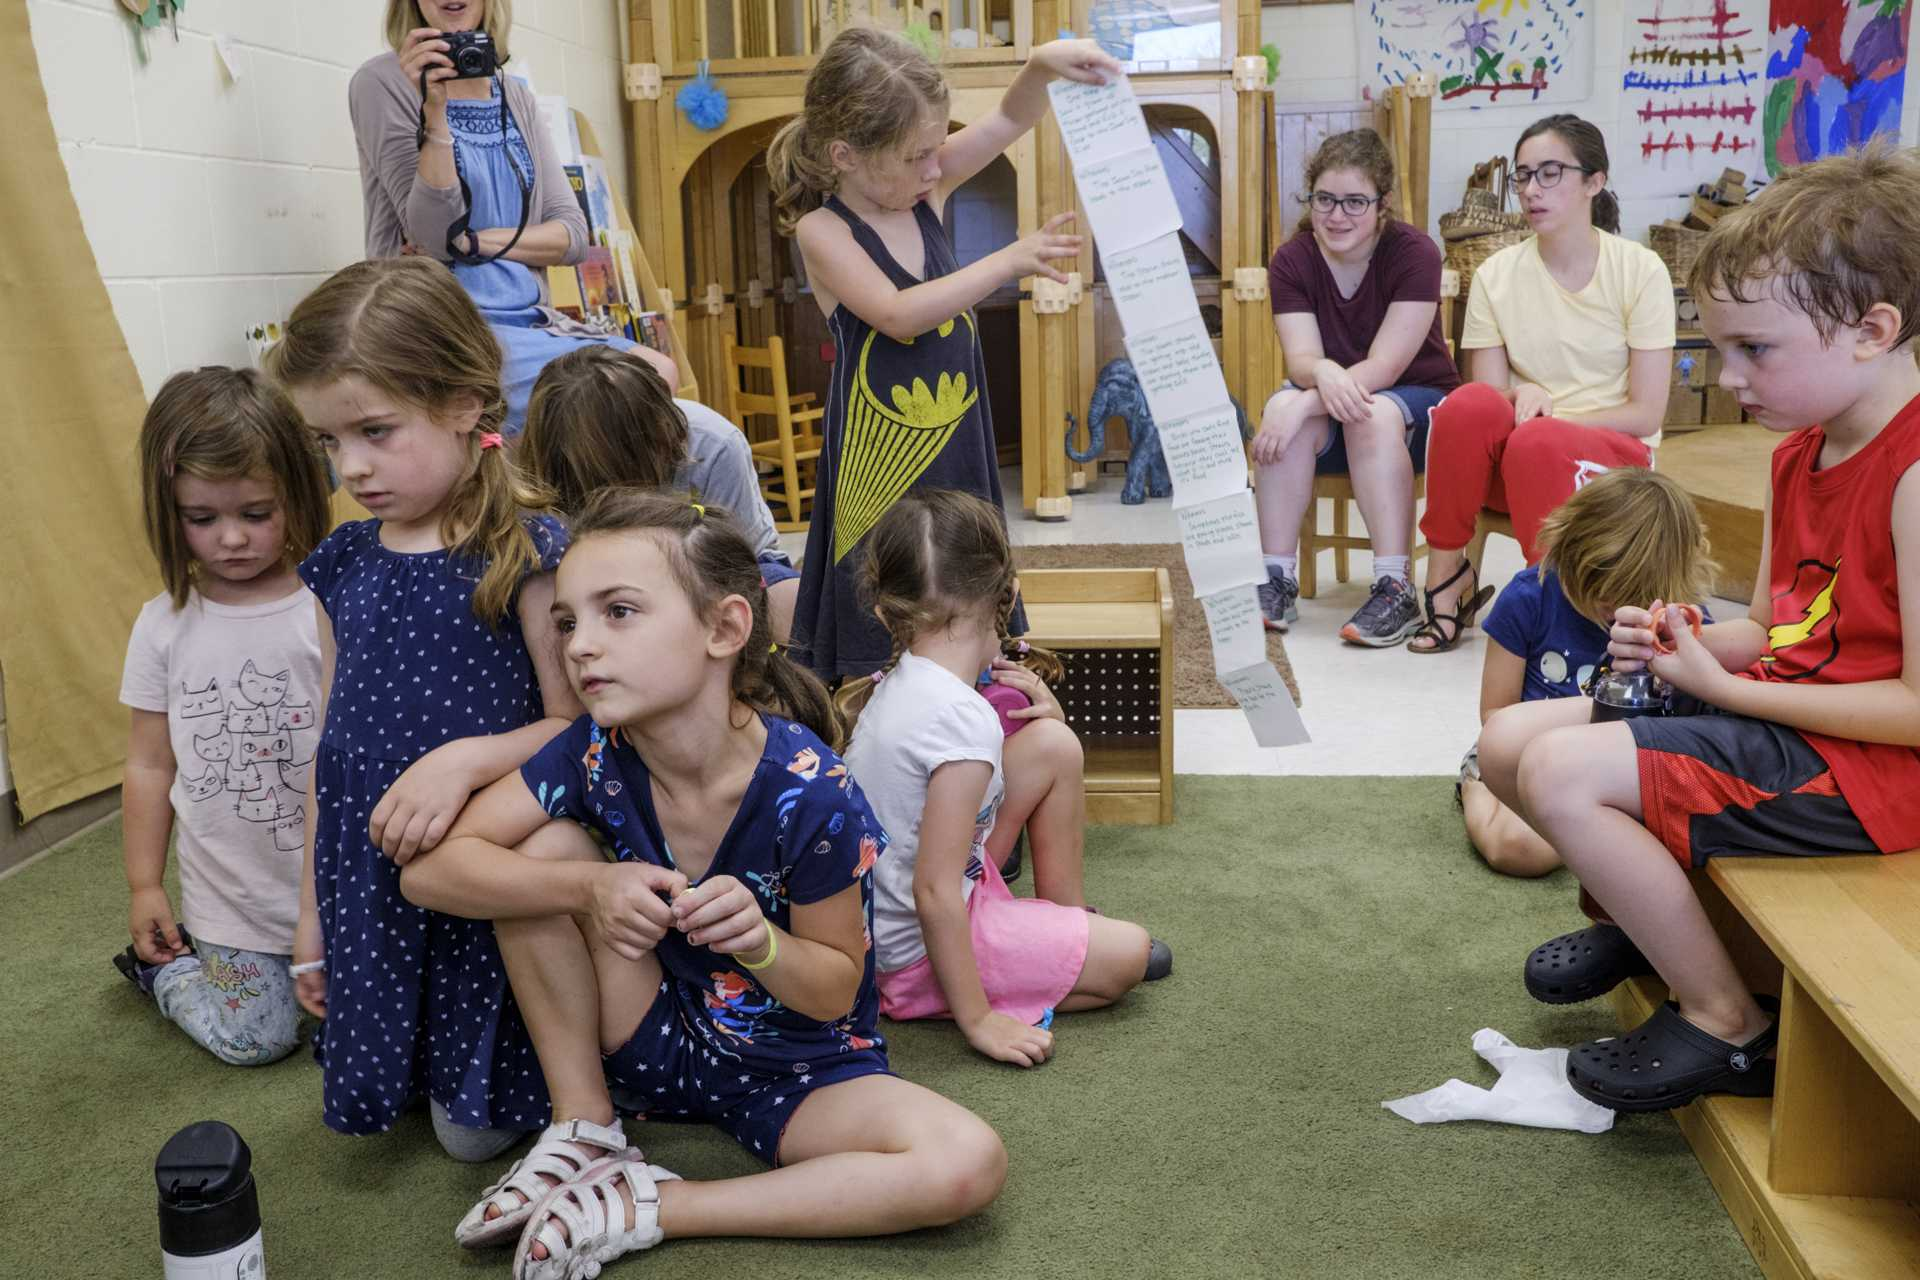 Tricia Windschitl's class at Preucil Preschool sits during a group interview on Thursday, July 5, 2018. The class wrote a proclamation to the Iowa City City Council calling for restaurants and individuals to reduce plastic straw use. (Nick Rohlman/The Daily Iowan)